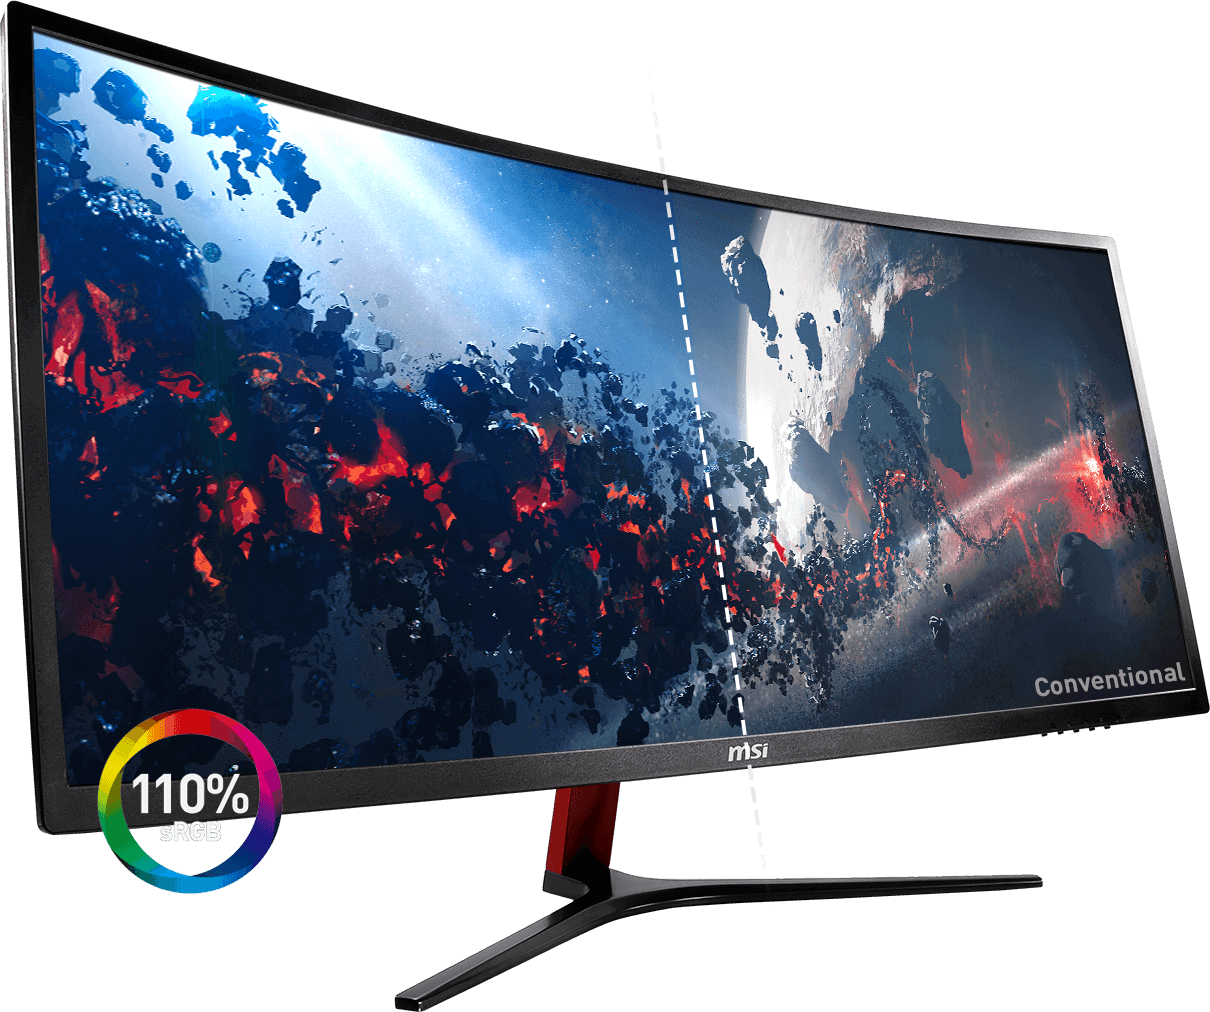 The Best Gaming Monitors 2019 - TechSpot